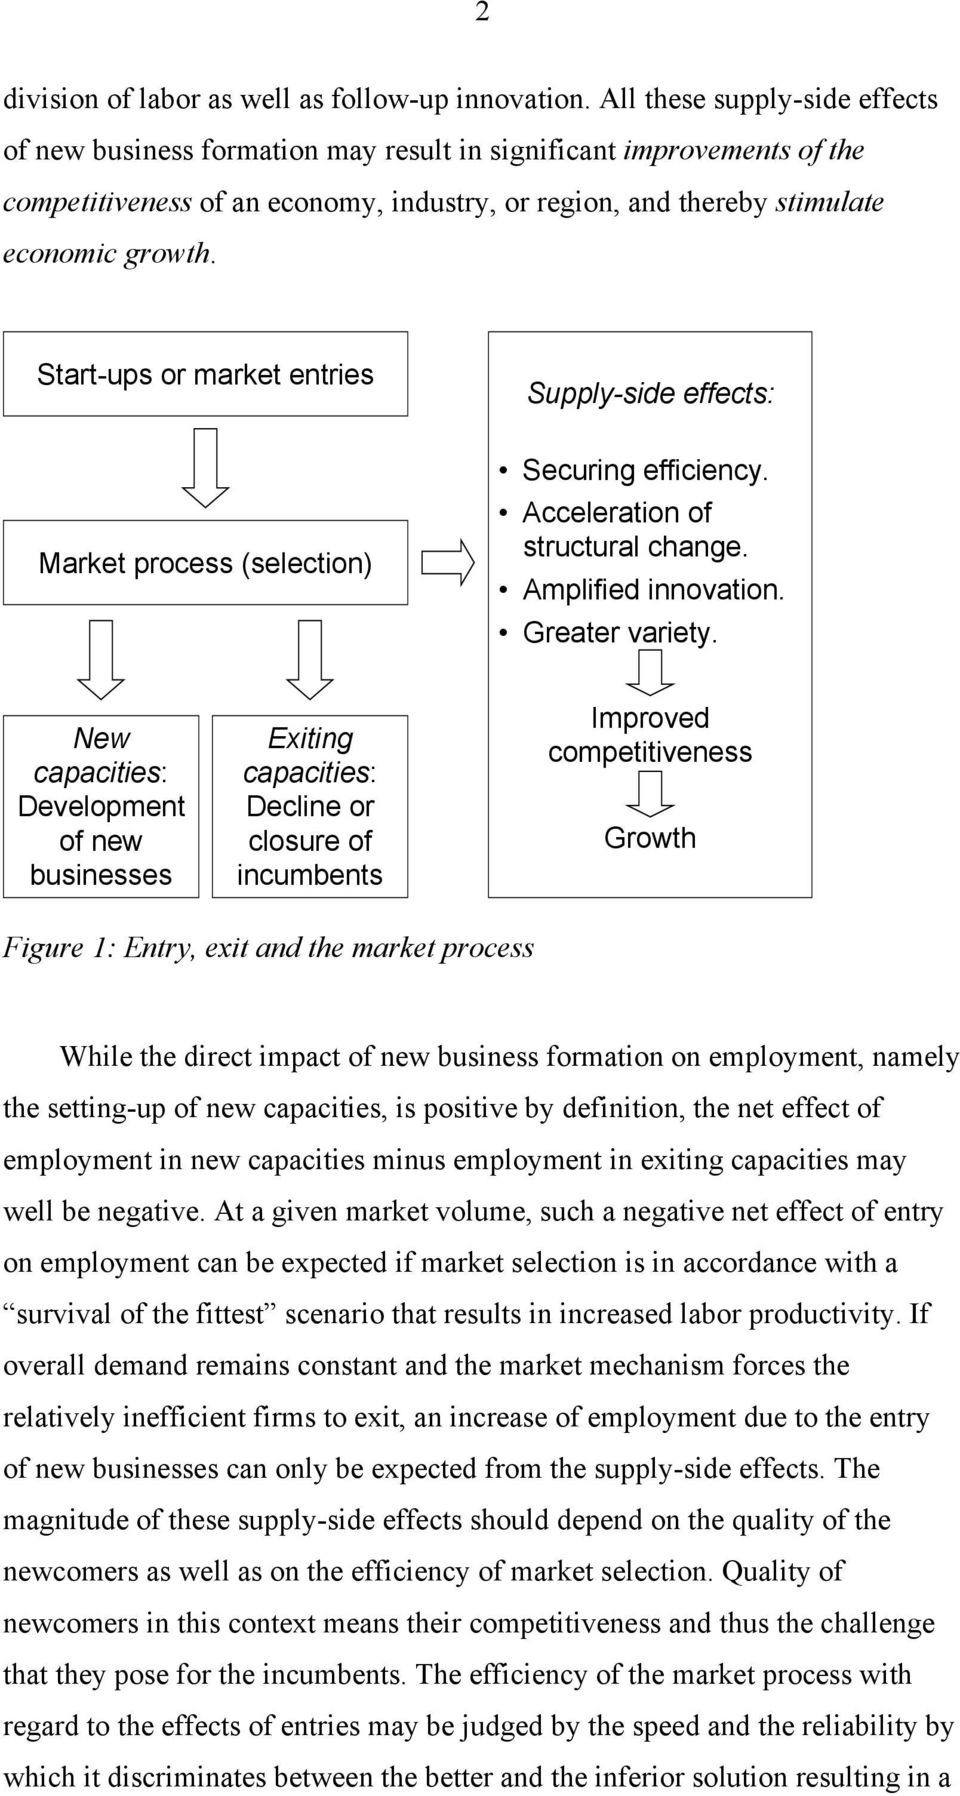 Start-ups or market entries Supply-side effects: Market process (selection) Securing efficiency. Acceleration of structural change. Amplified innovation. Greater variety.